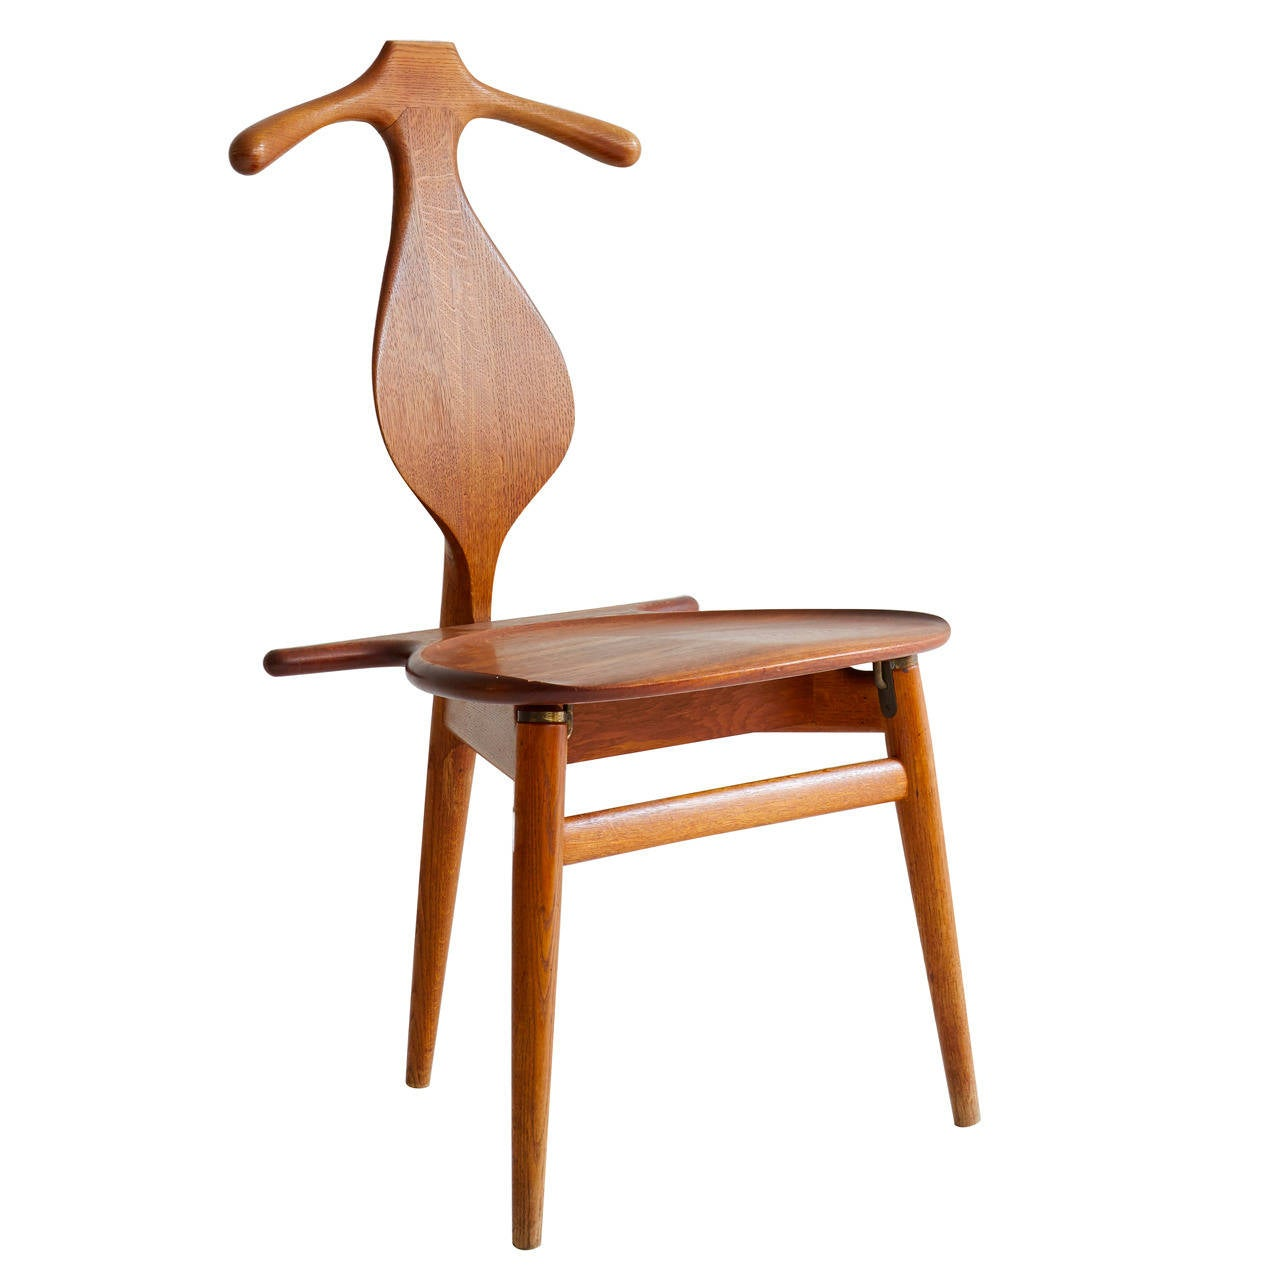 hans wegner valet chair at 1stdibs. Black Bedroom Furniture Sets. Home Design Ideas